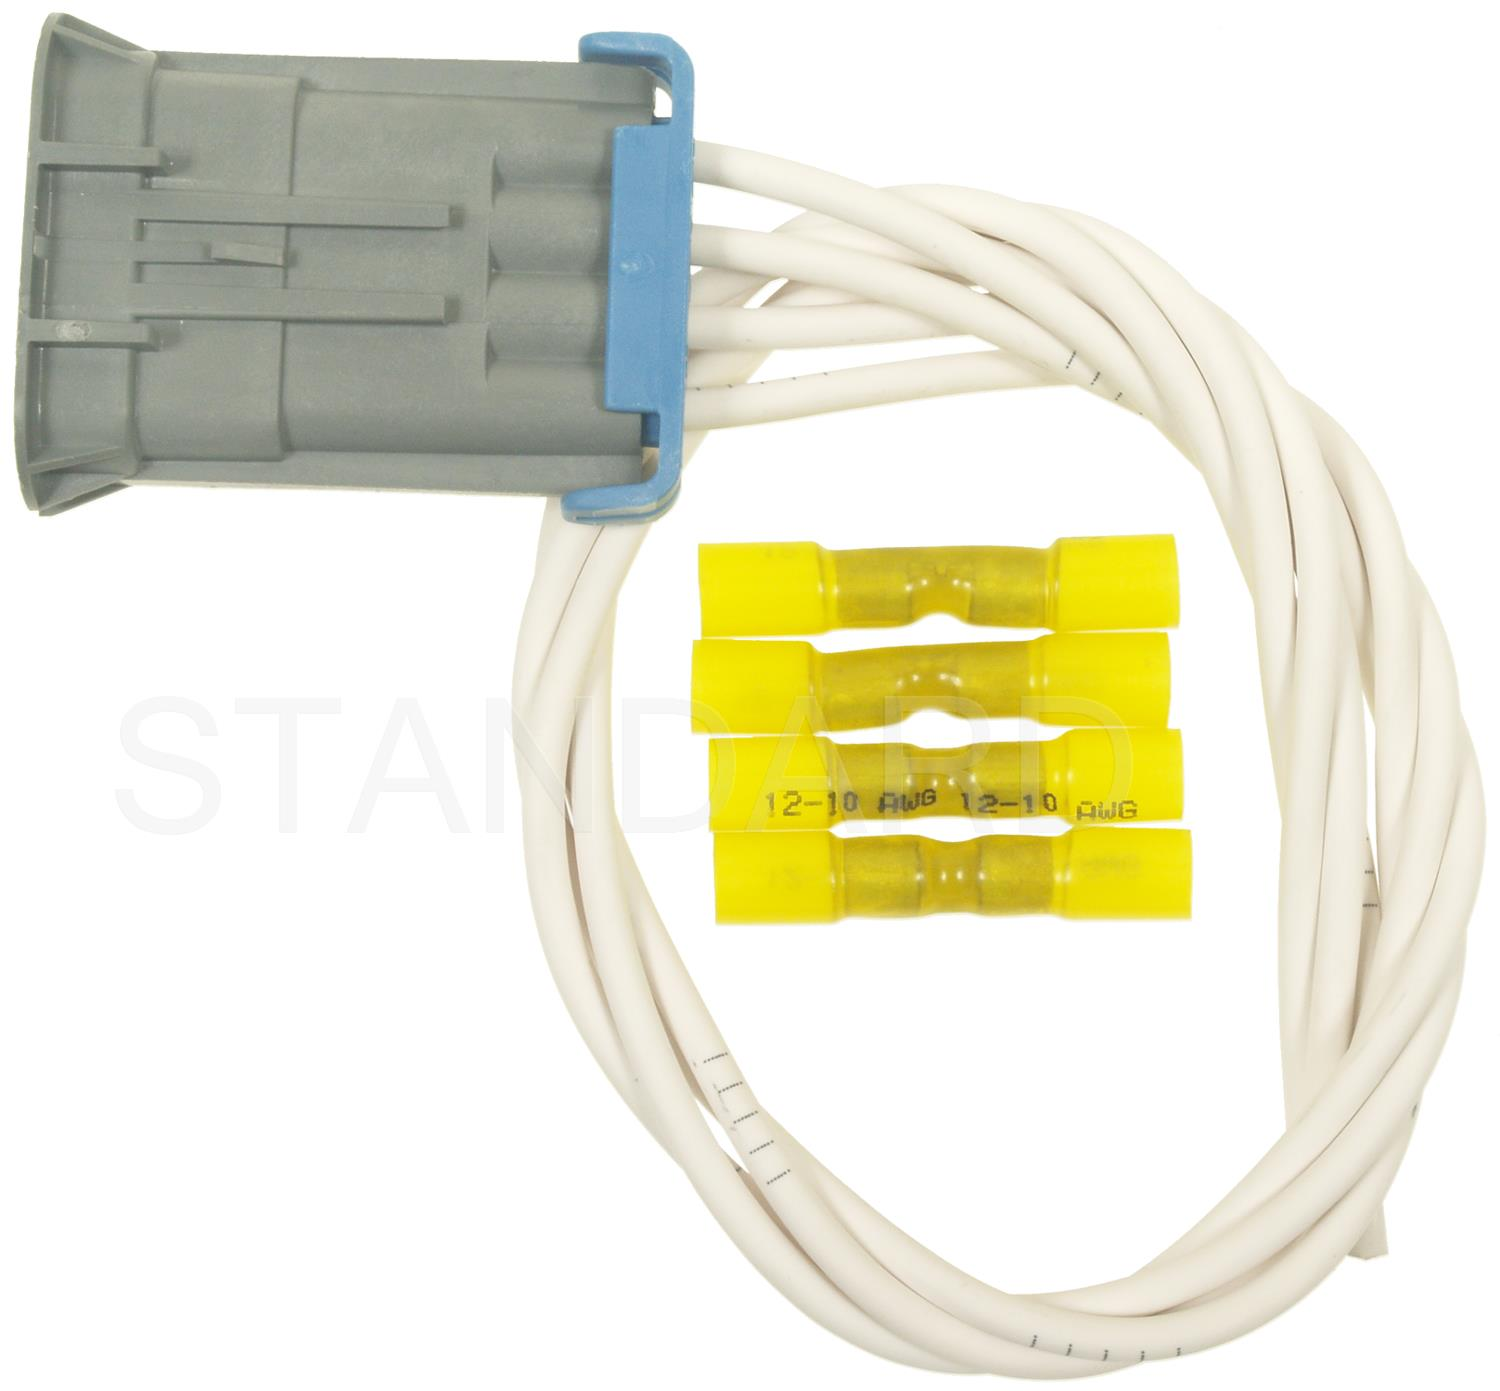 hight resolution of  2001 oldsmobile aurora body wiring harness connector si s 1340